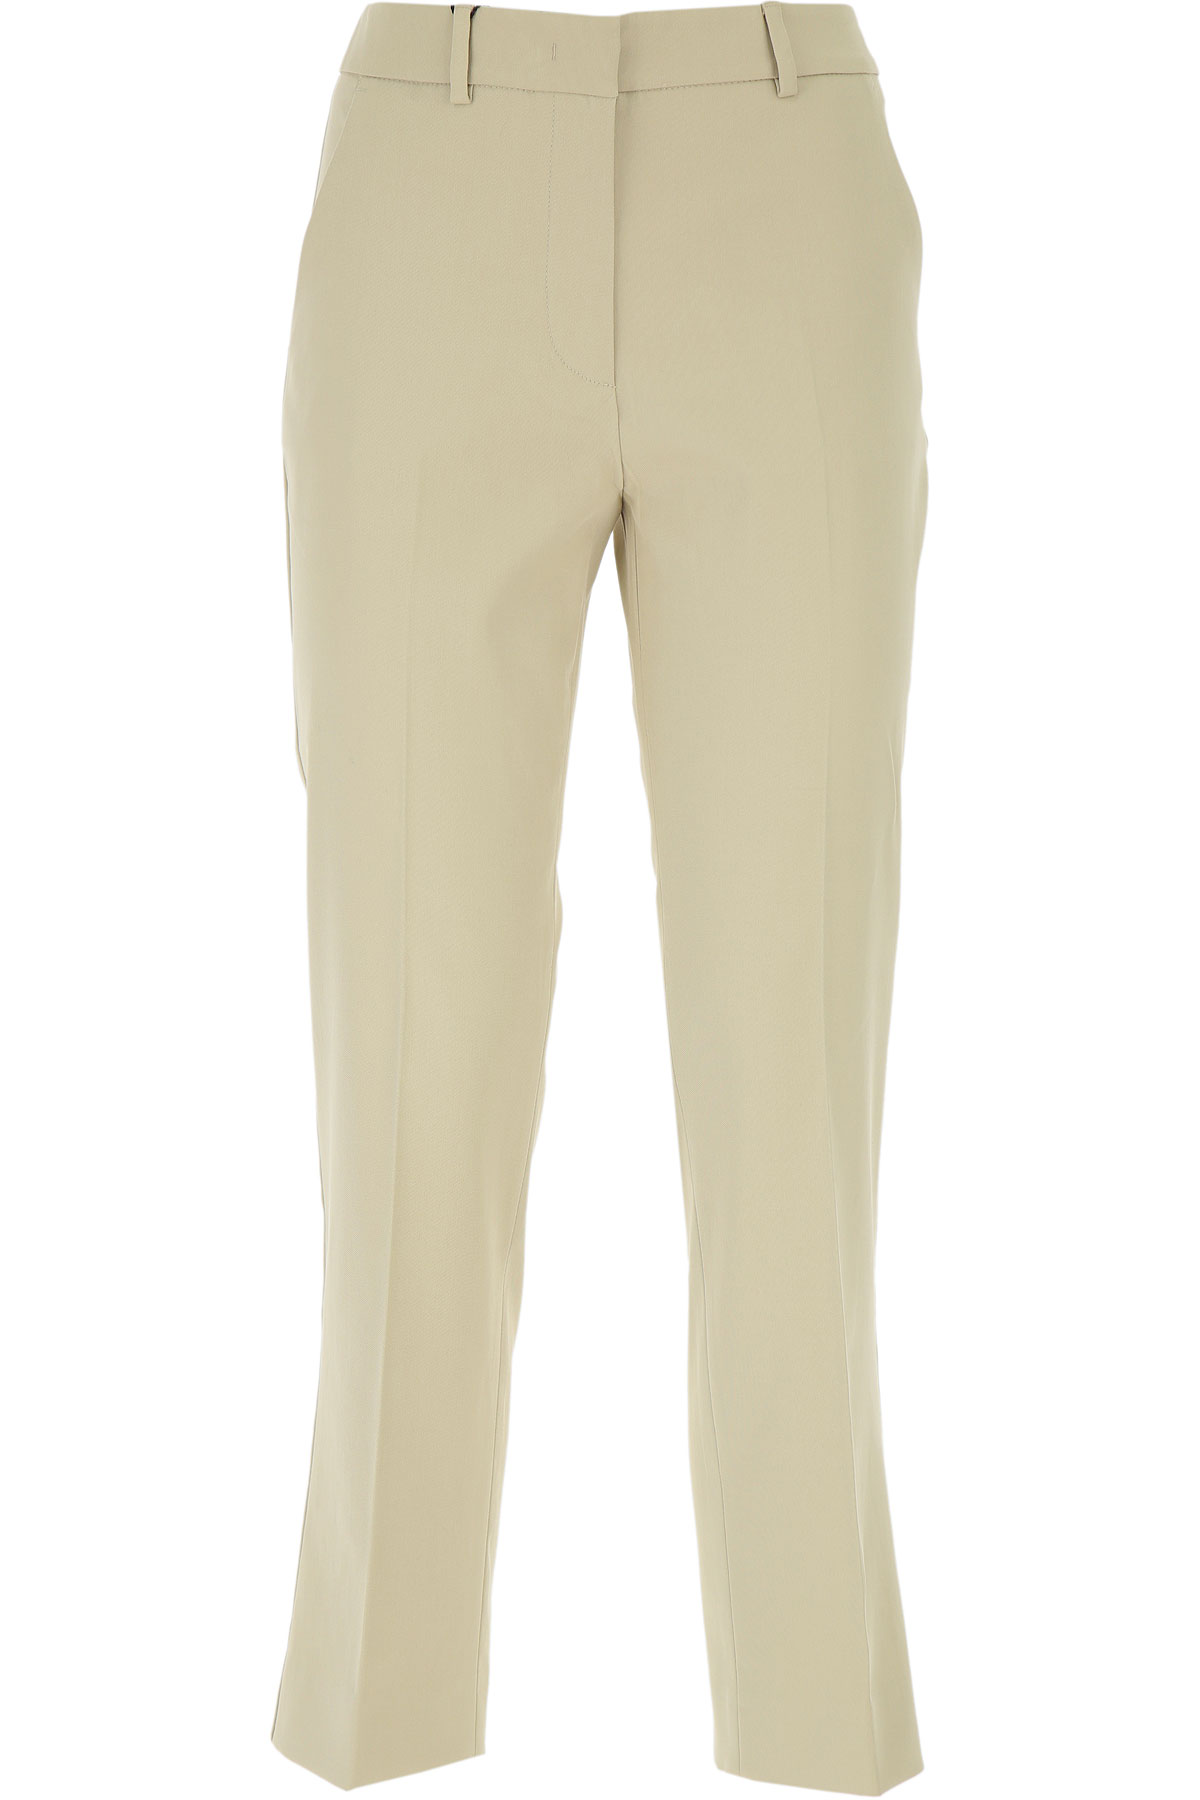 Max Mara Pants for Women On Sale, Beige, Cotton, 2019, 30 34 8